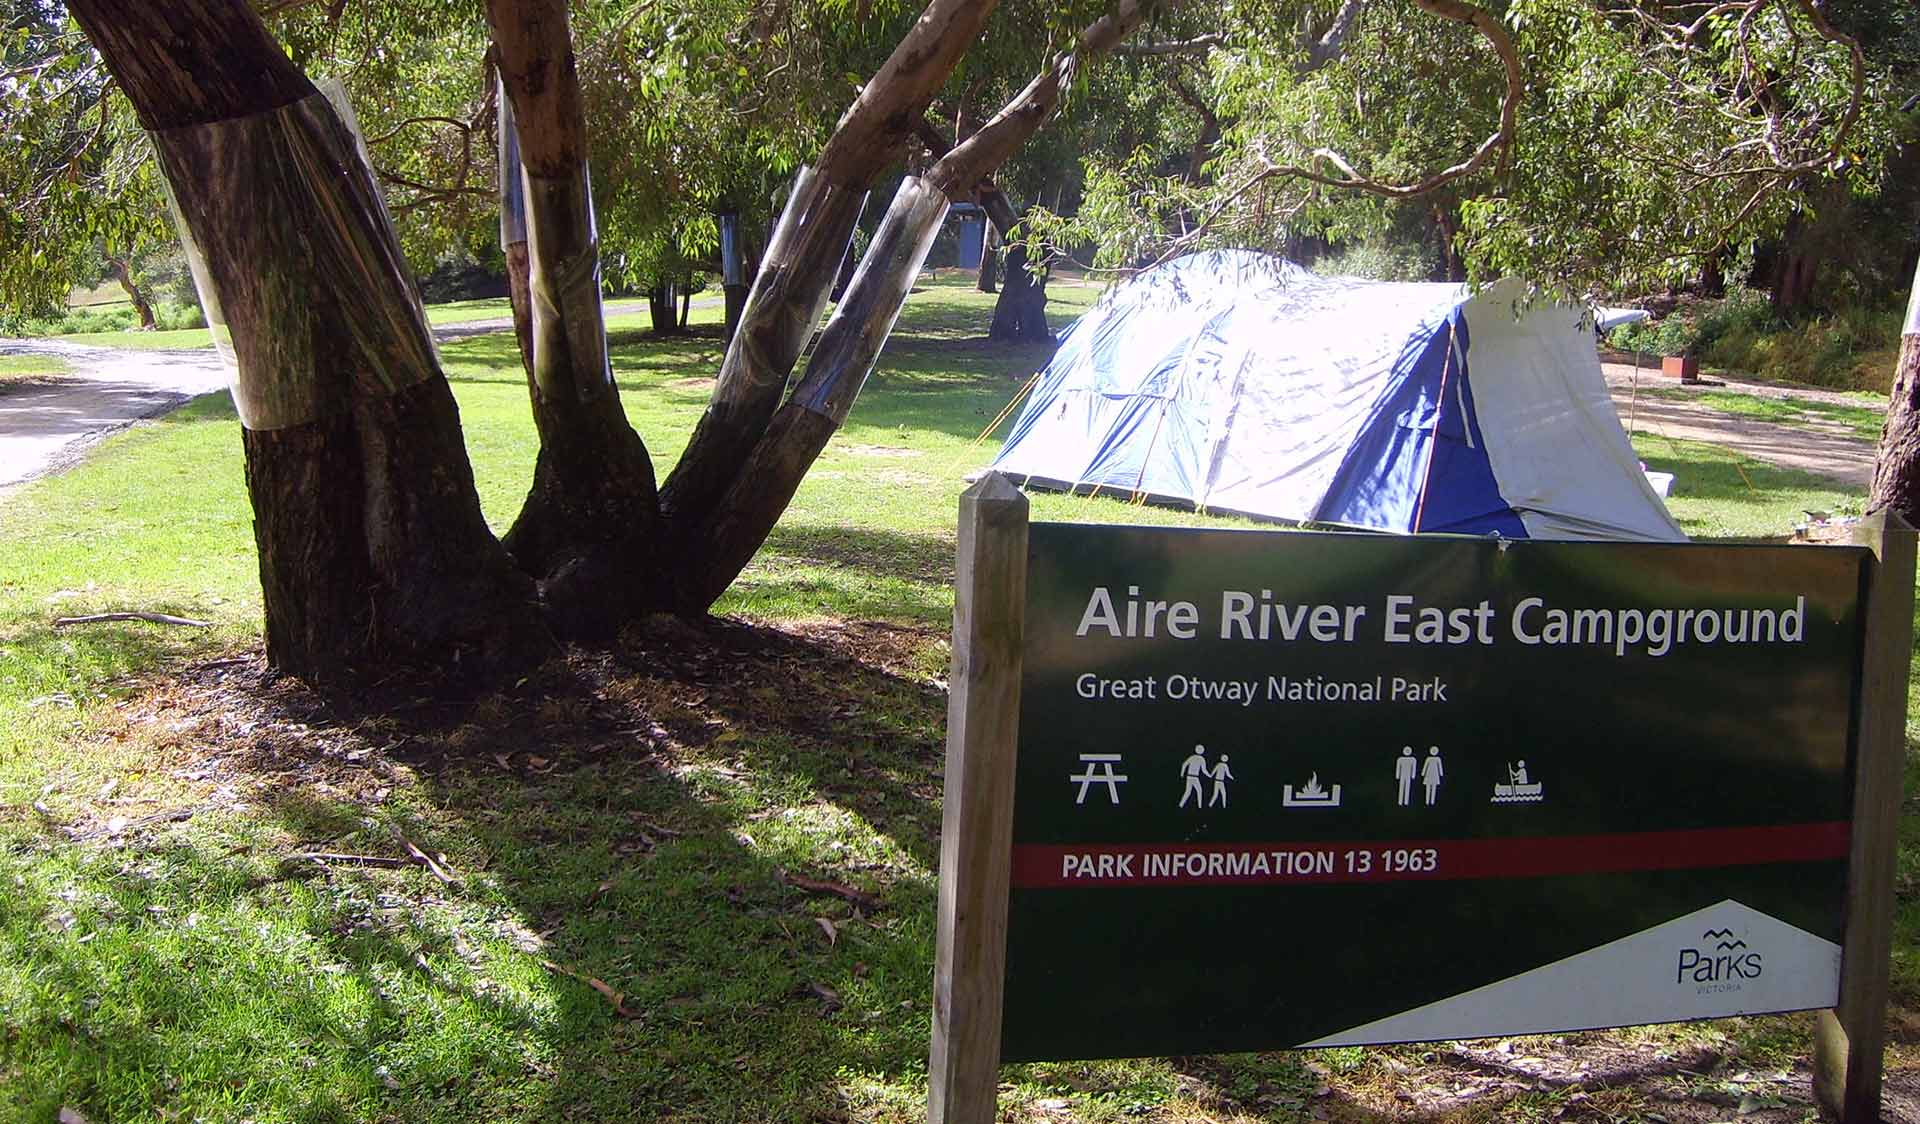 The Aire River East Campground